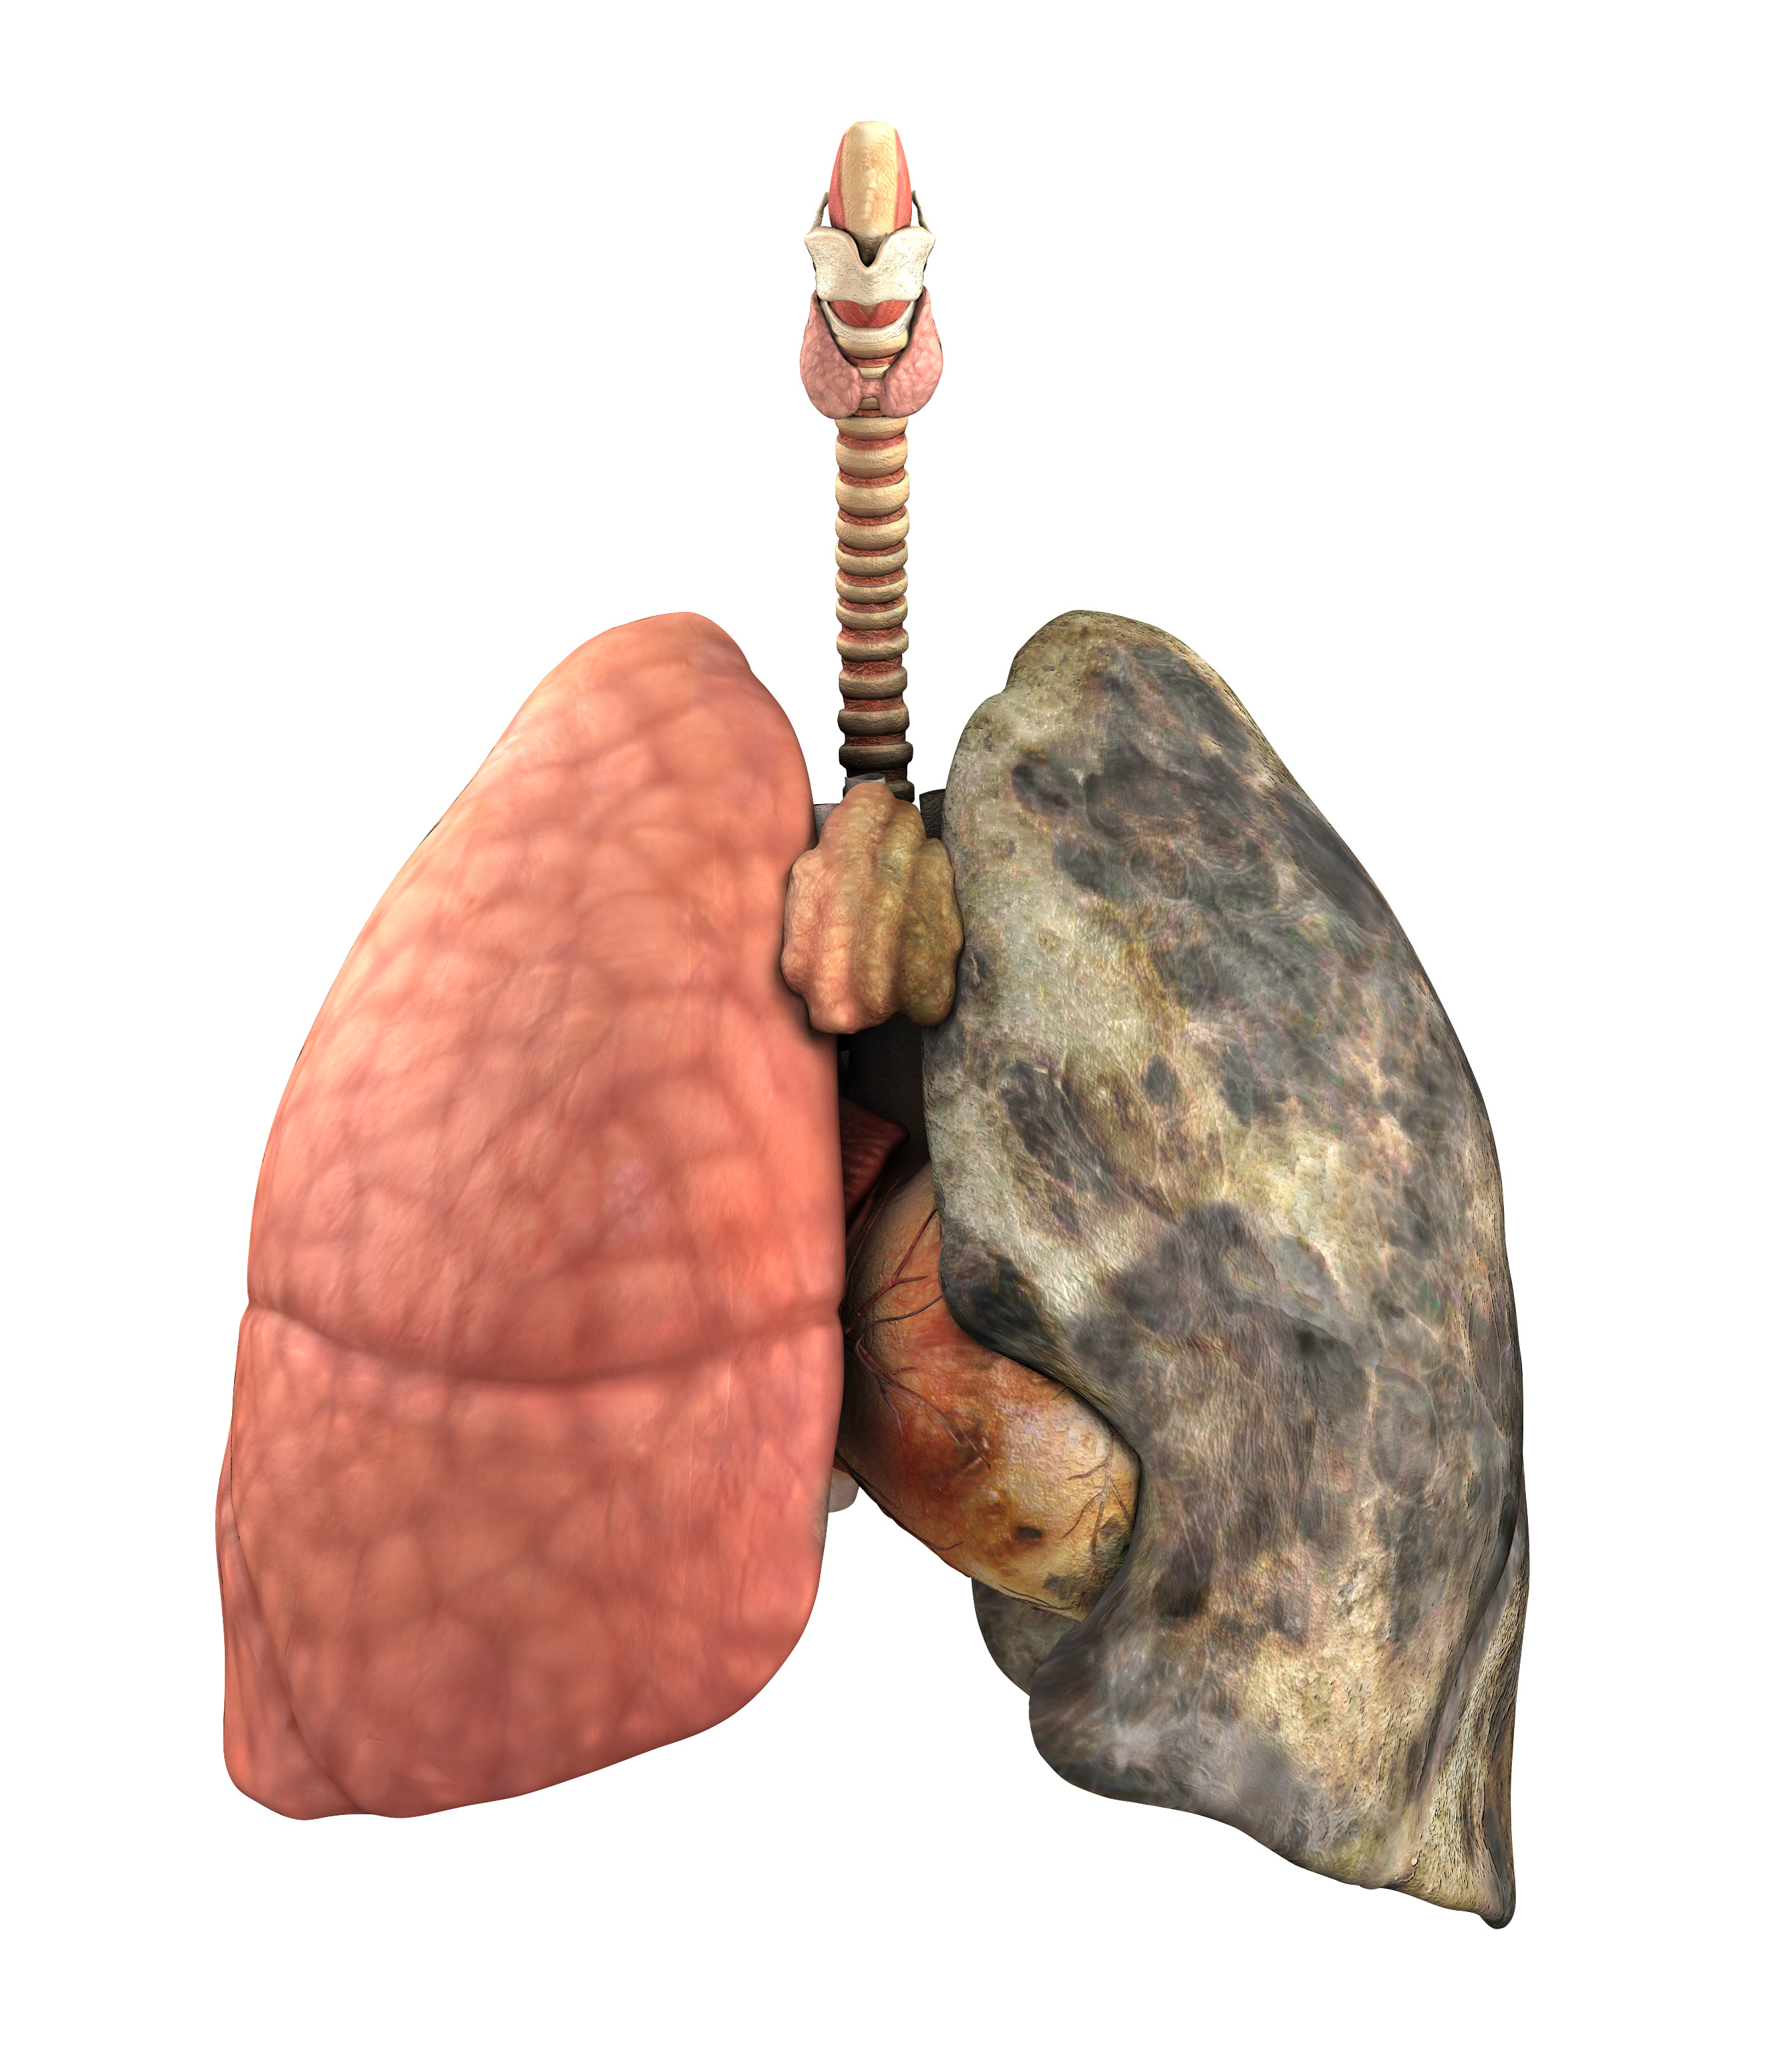 A set of lungs, before and after a lifetime of smoking - 3d render.